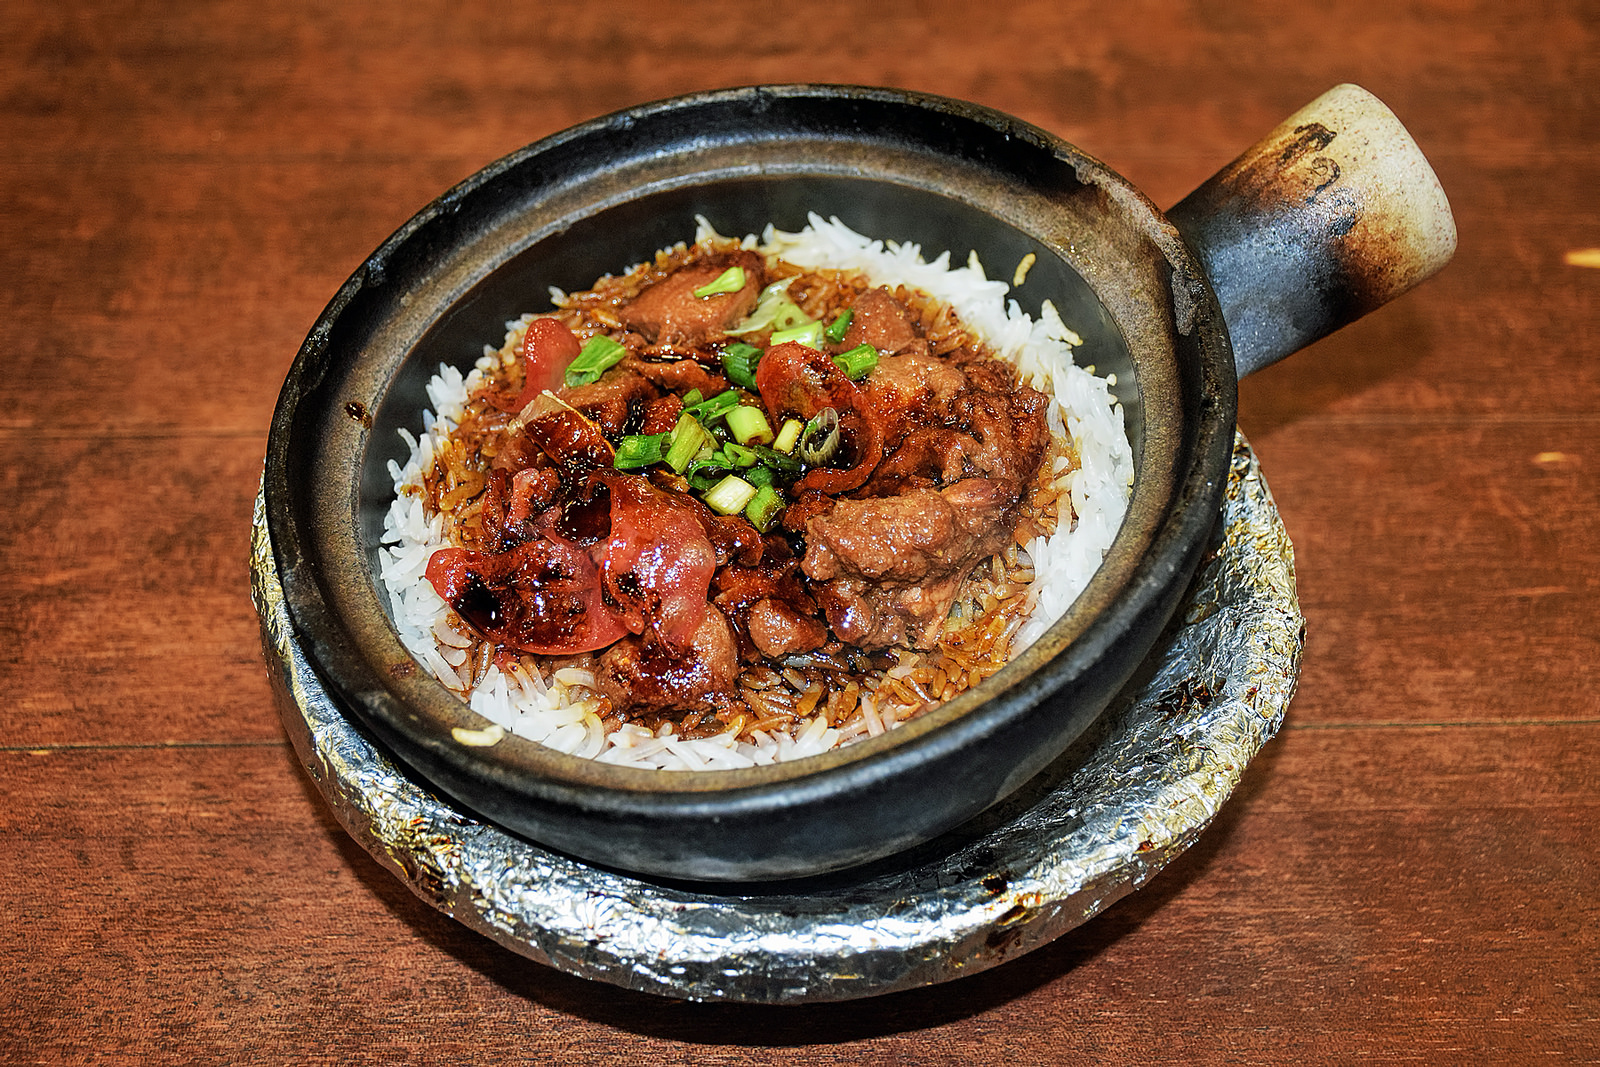 claypot rice chinese food one pot dish singapore meat burnt bottom